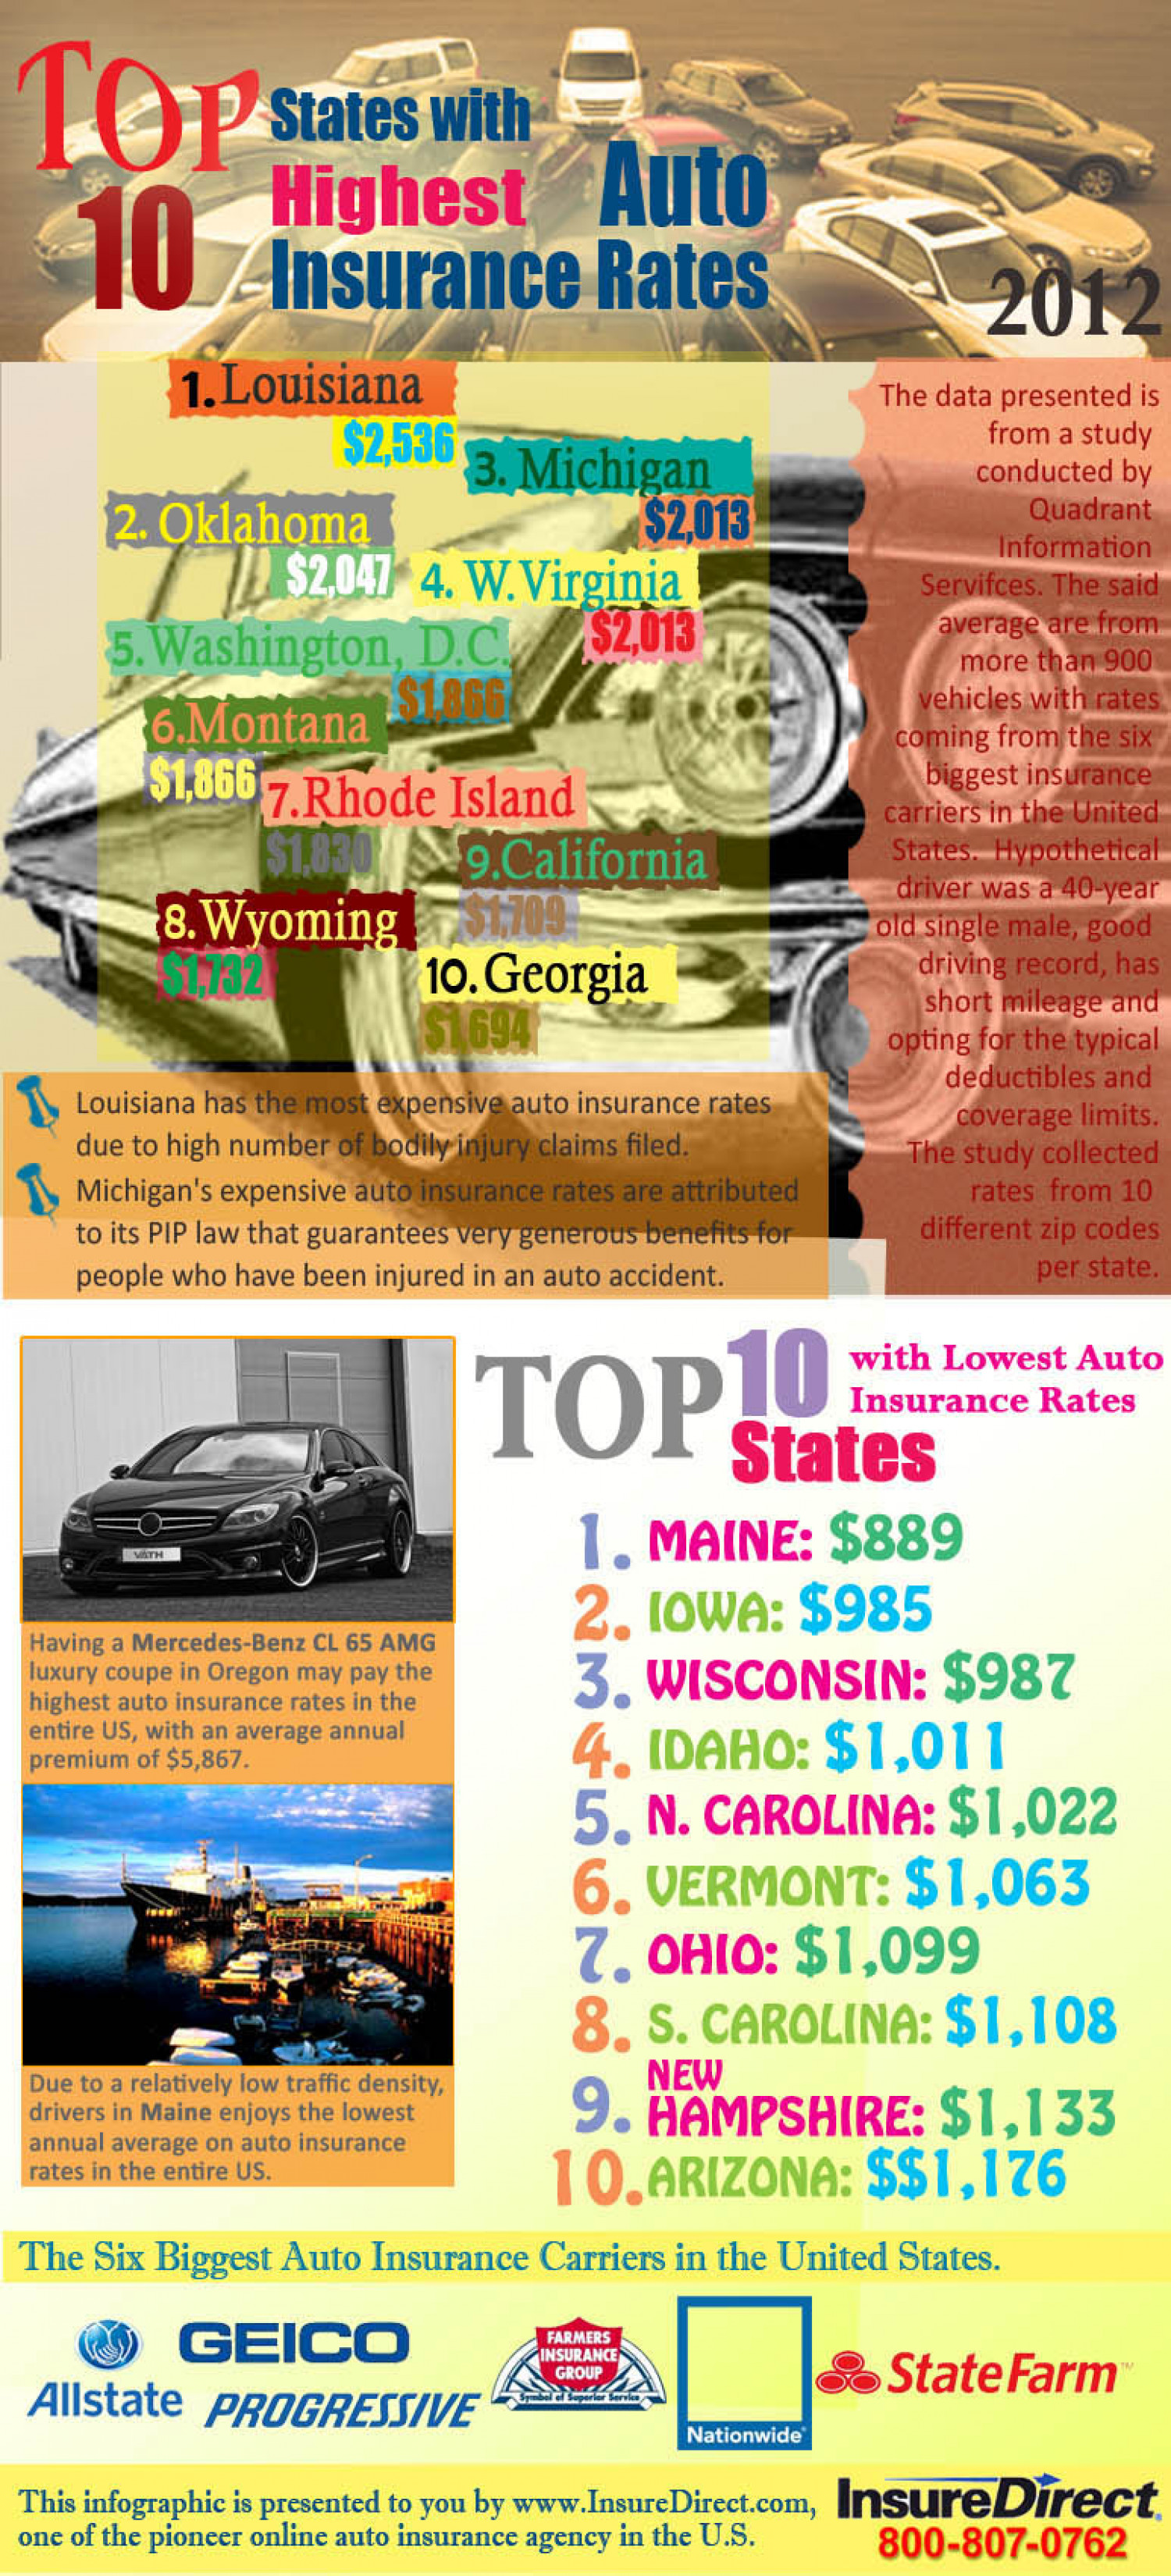 Top 10 States With Highest & Lowest Auto Insurance Rates Infographic